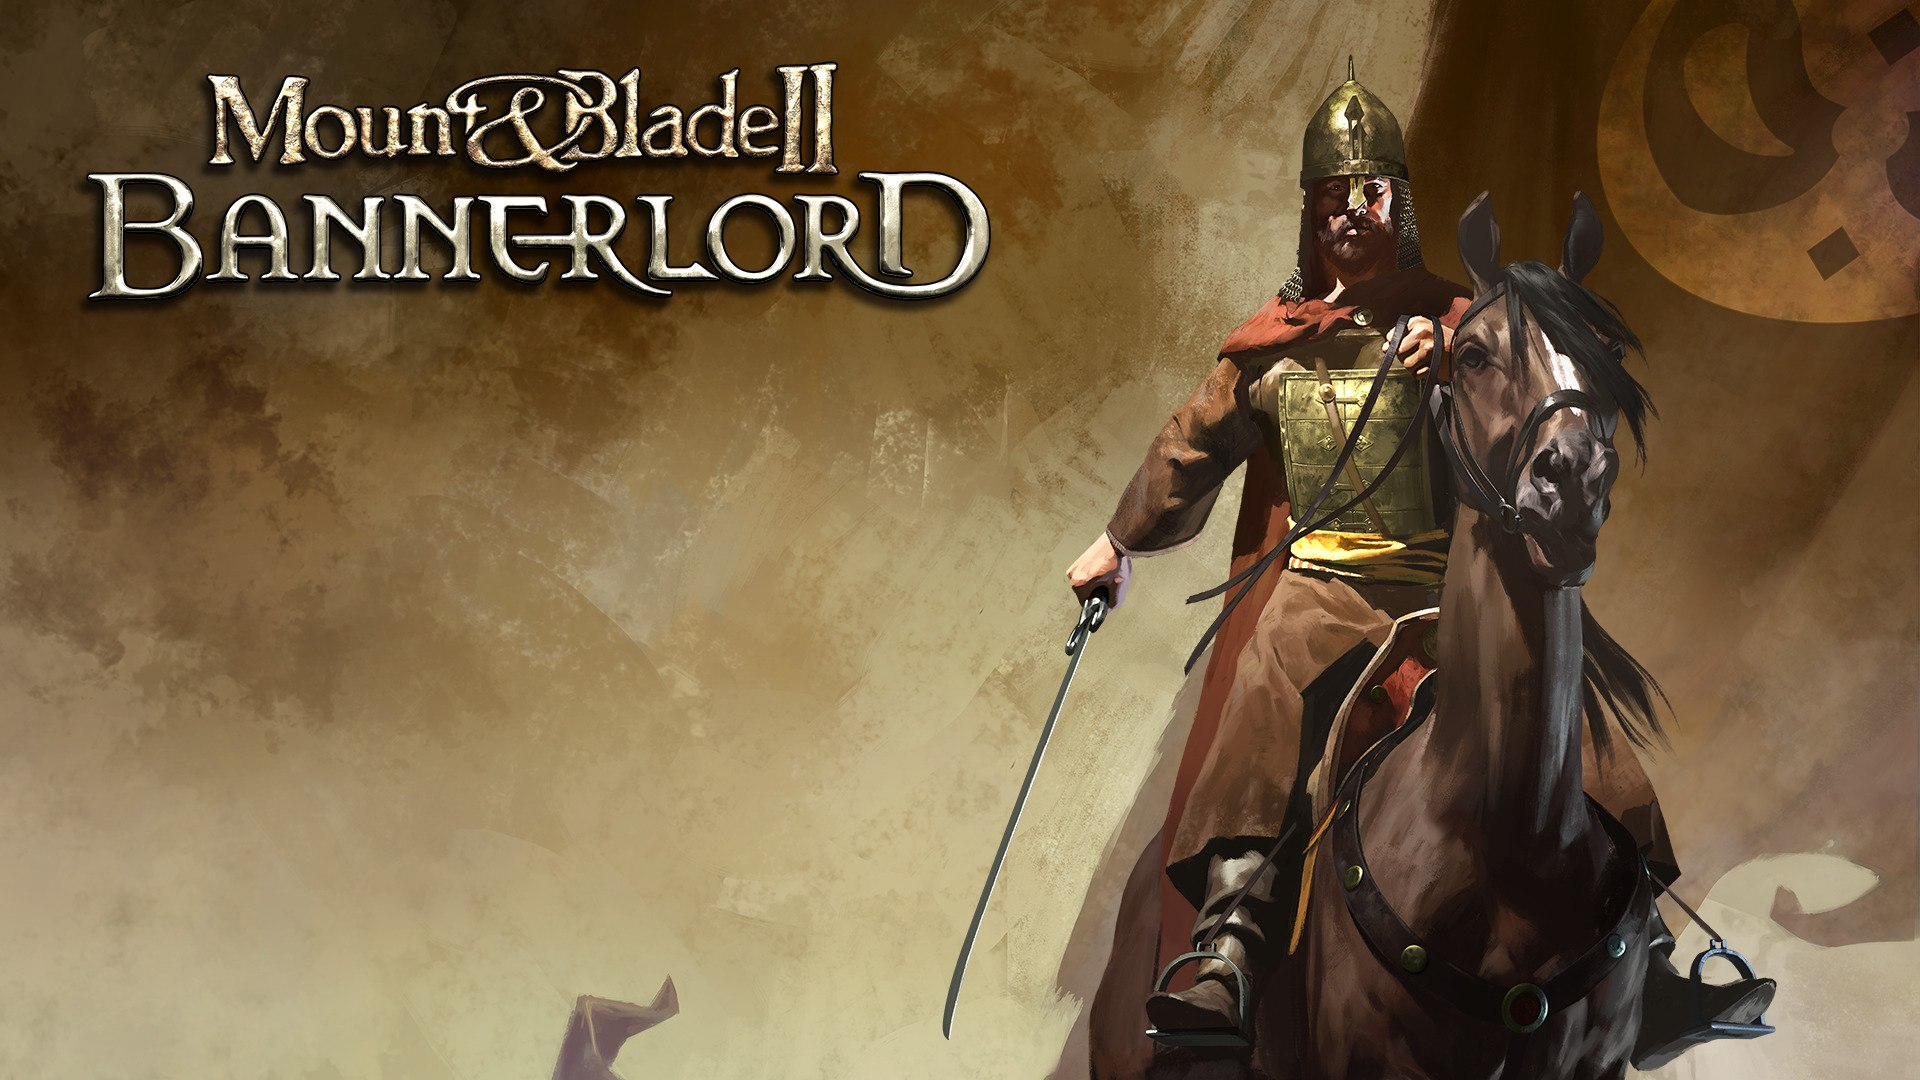 Mount Blade Ii Bannerlord Hd Wallpaper Background Image